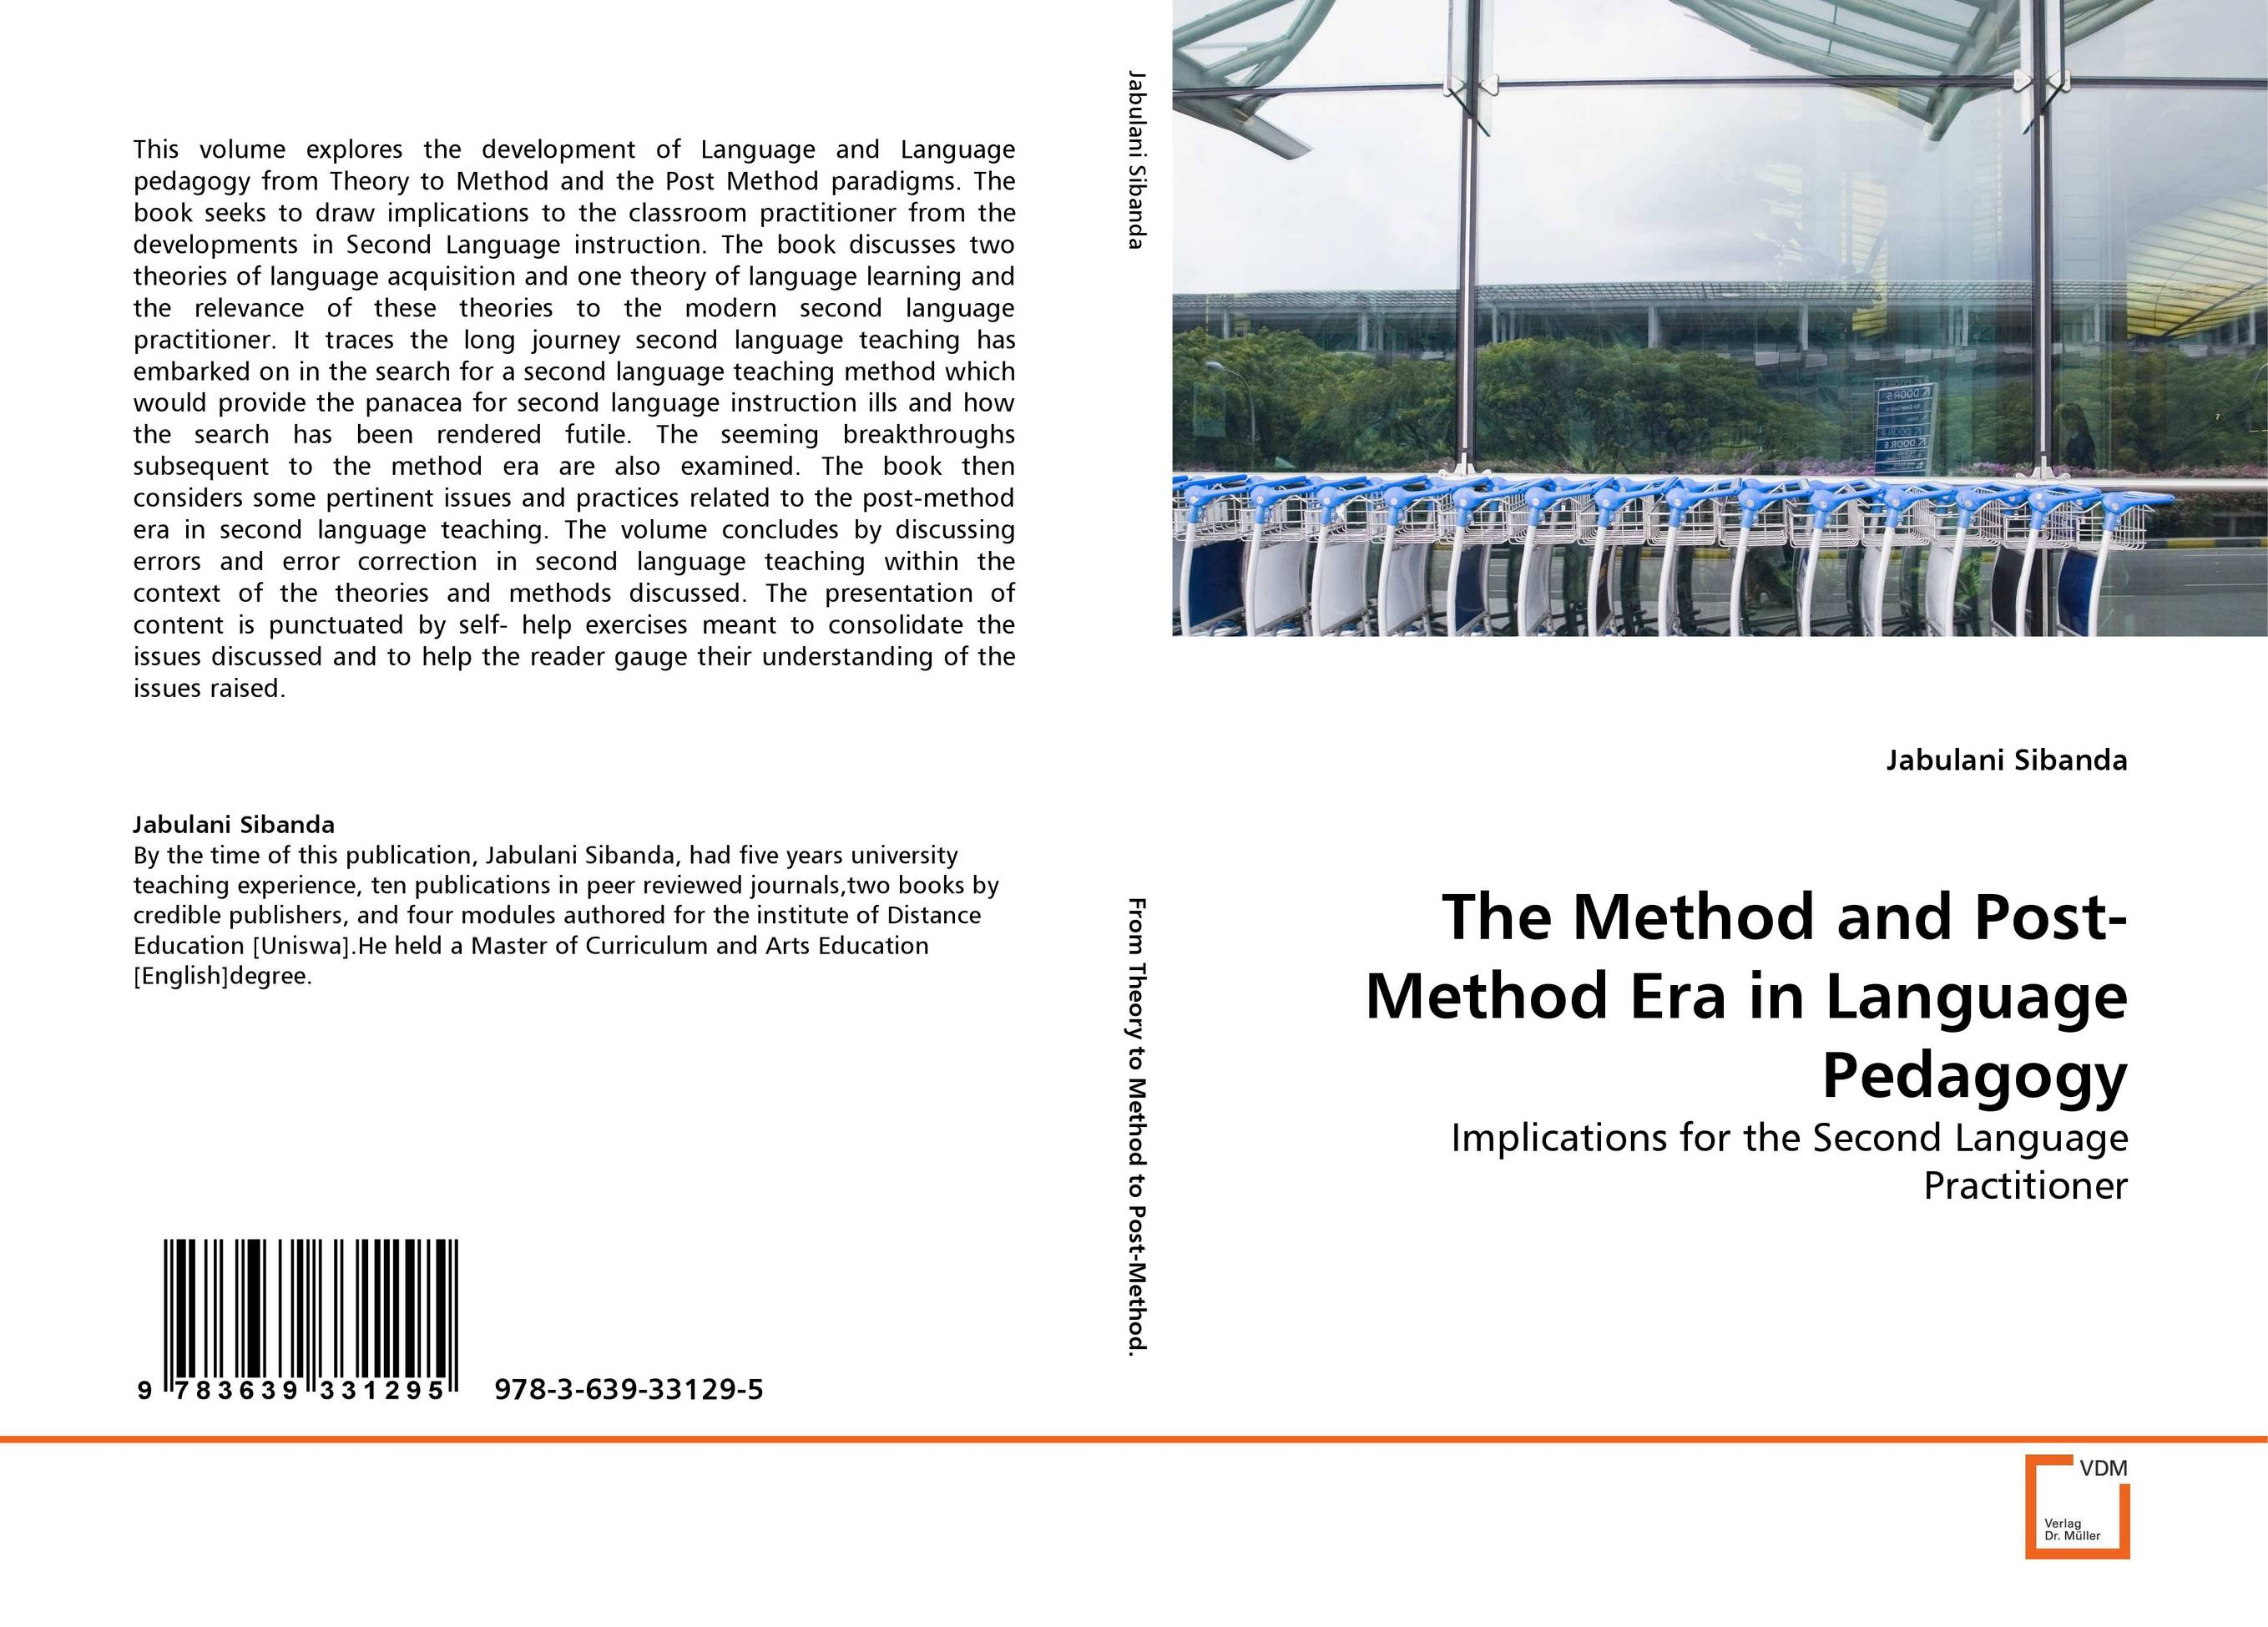 The Method and Post-Method Era in Language Pedagogy